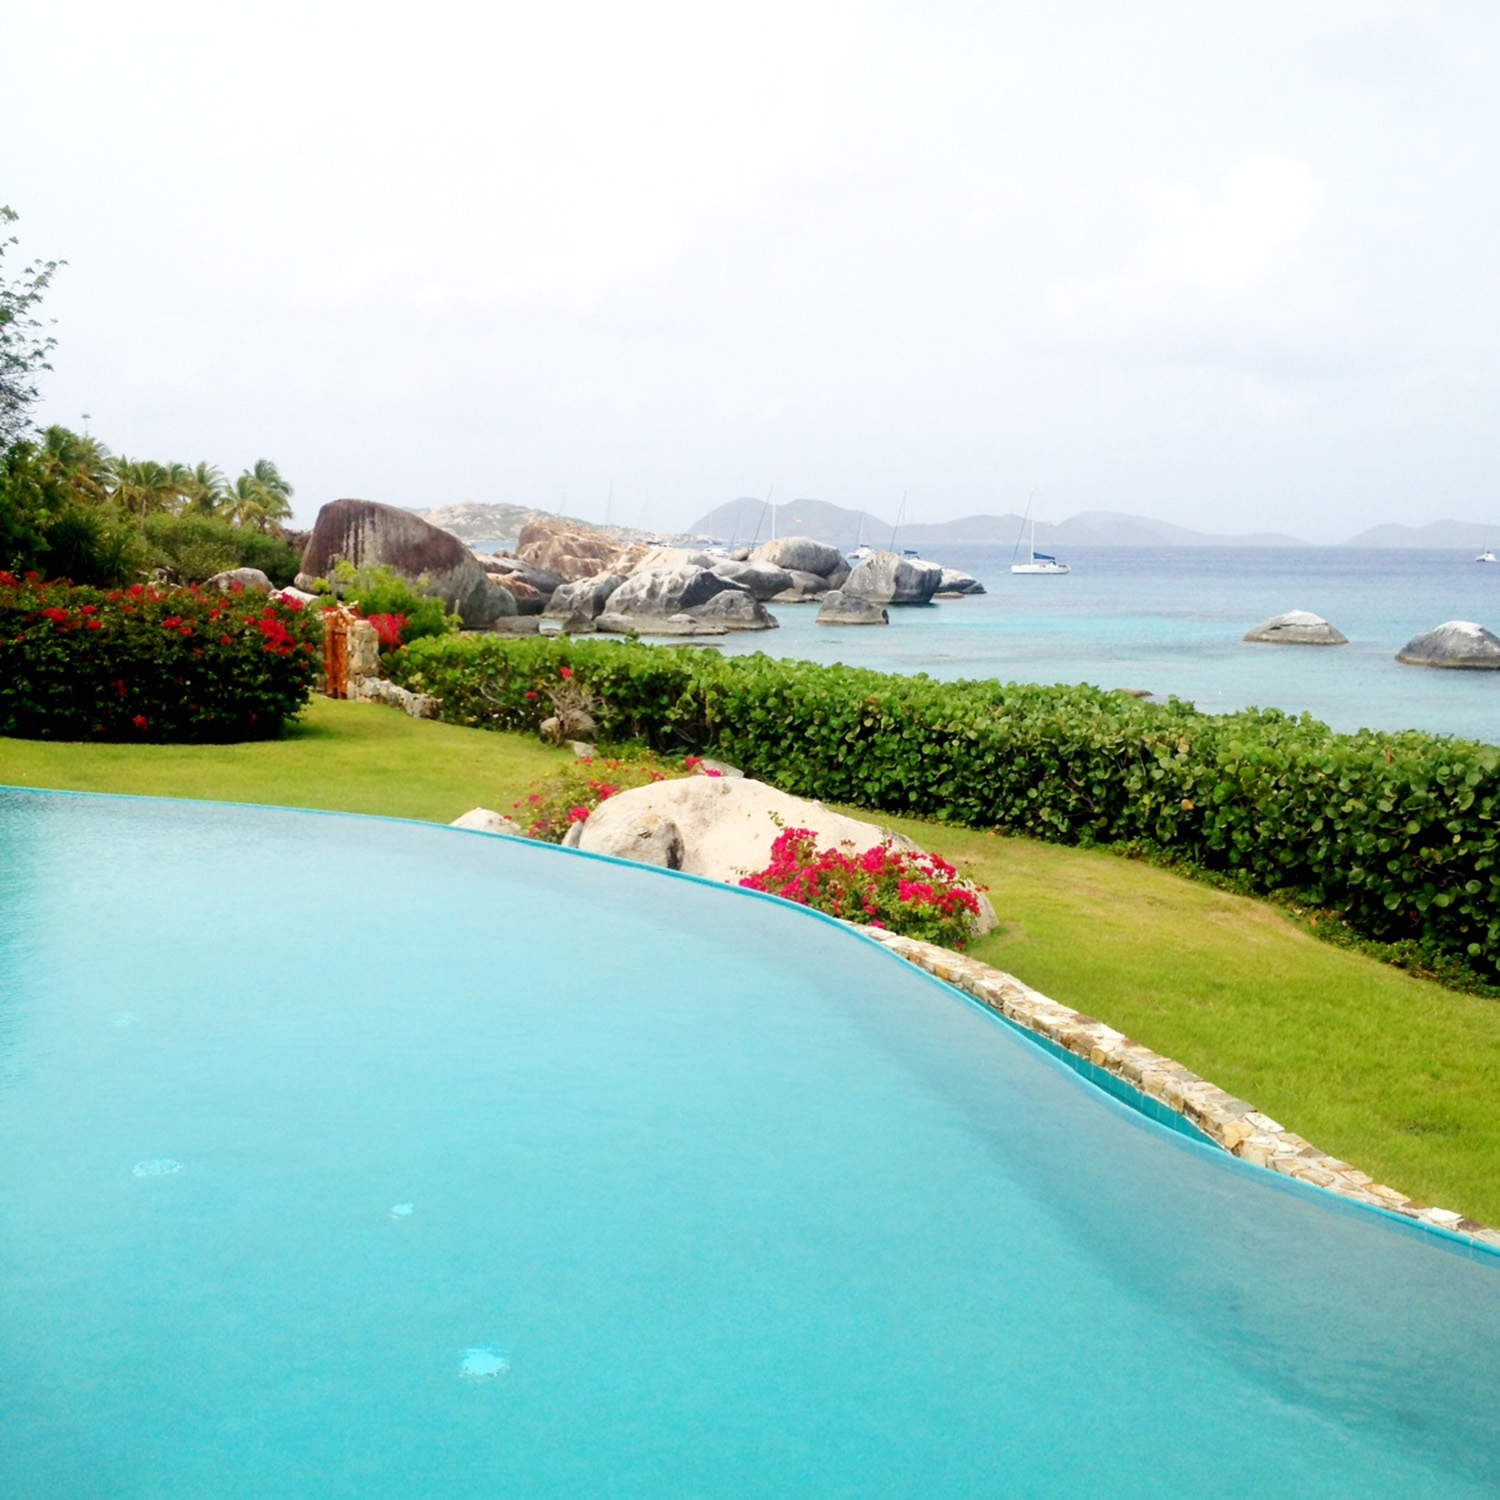 A large pool situated next to a manicured lawn and bright blue ocean